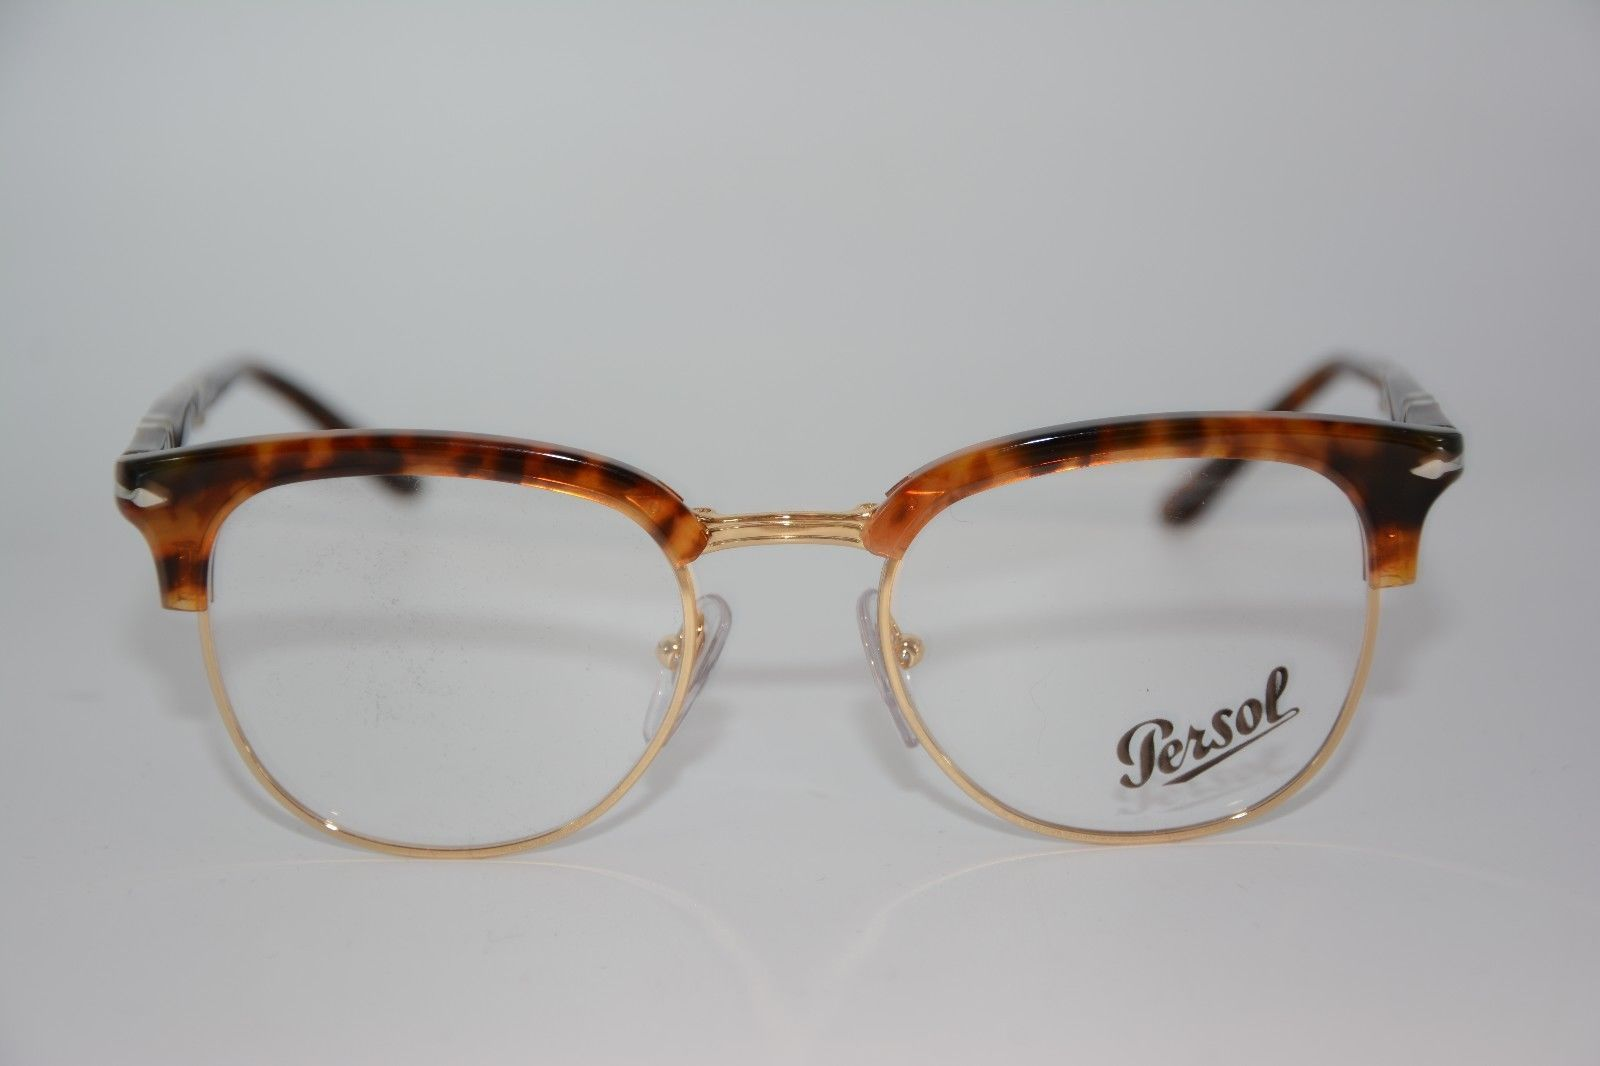 Persol Eyeglass Frames: 1 customer review and 5 listings